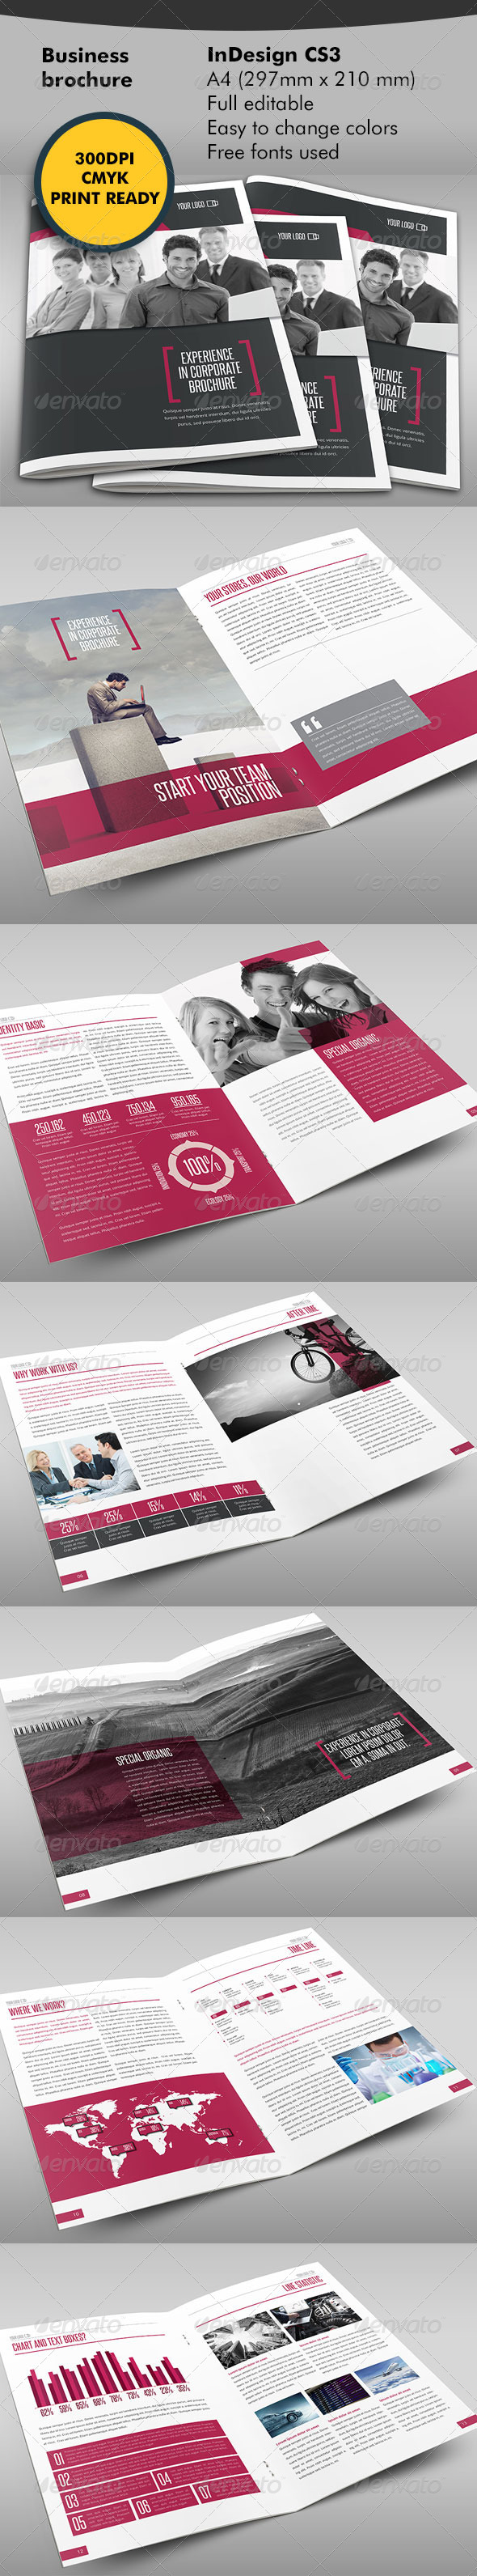 GraphicRiver Business One Step Further Brochure 5975192